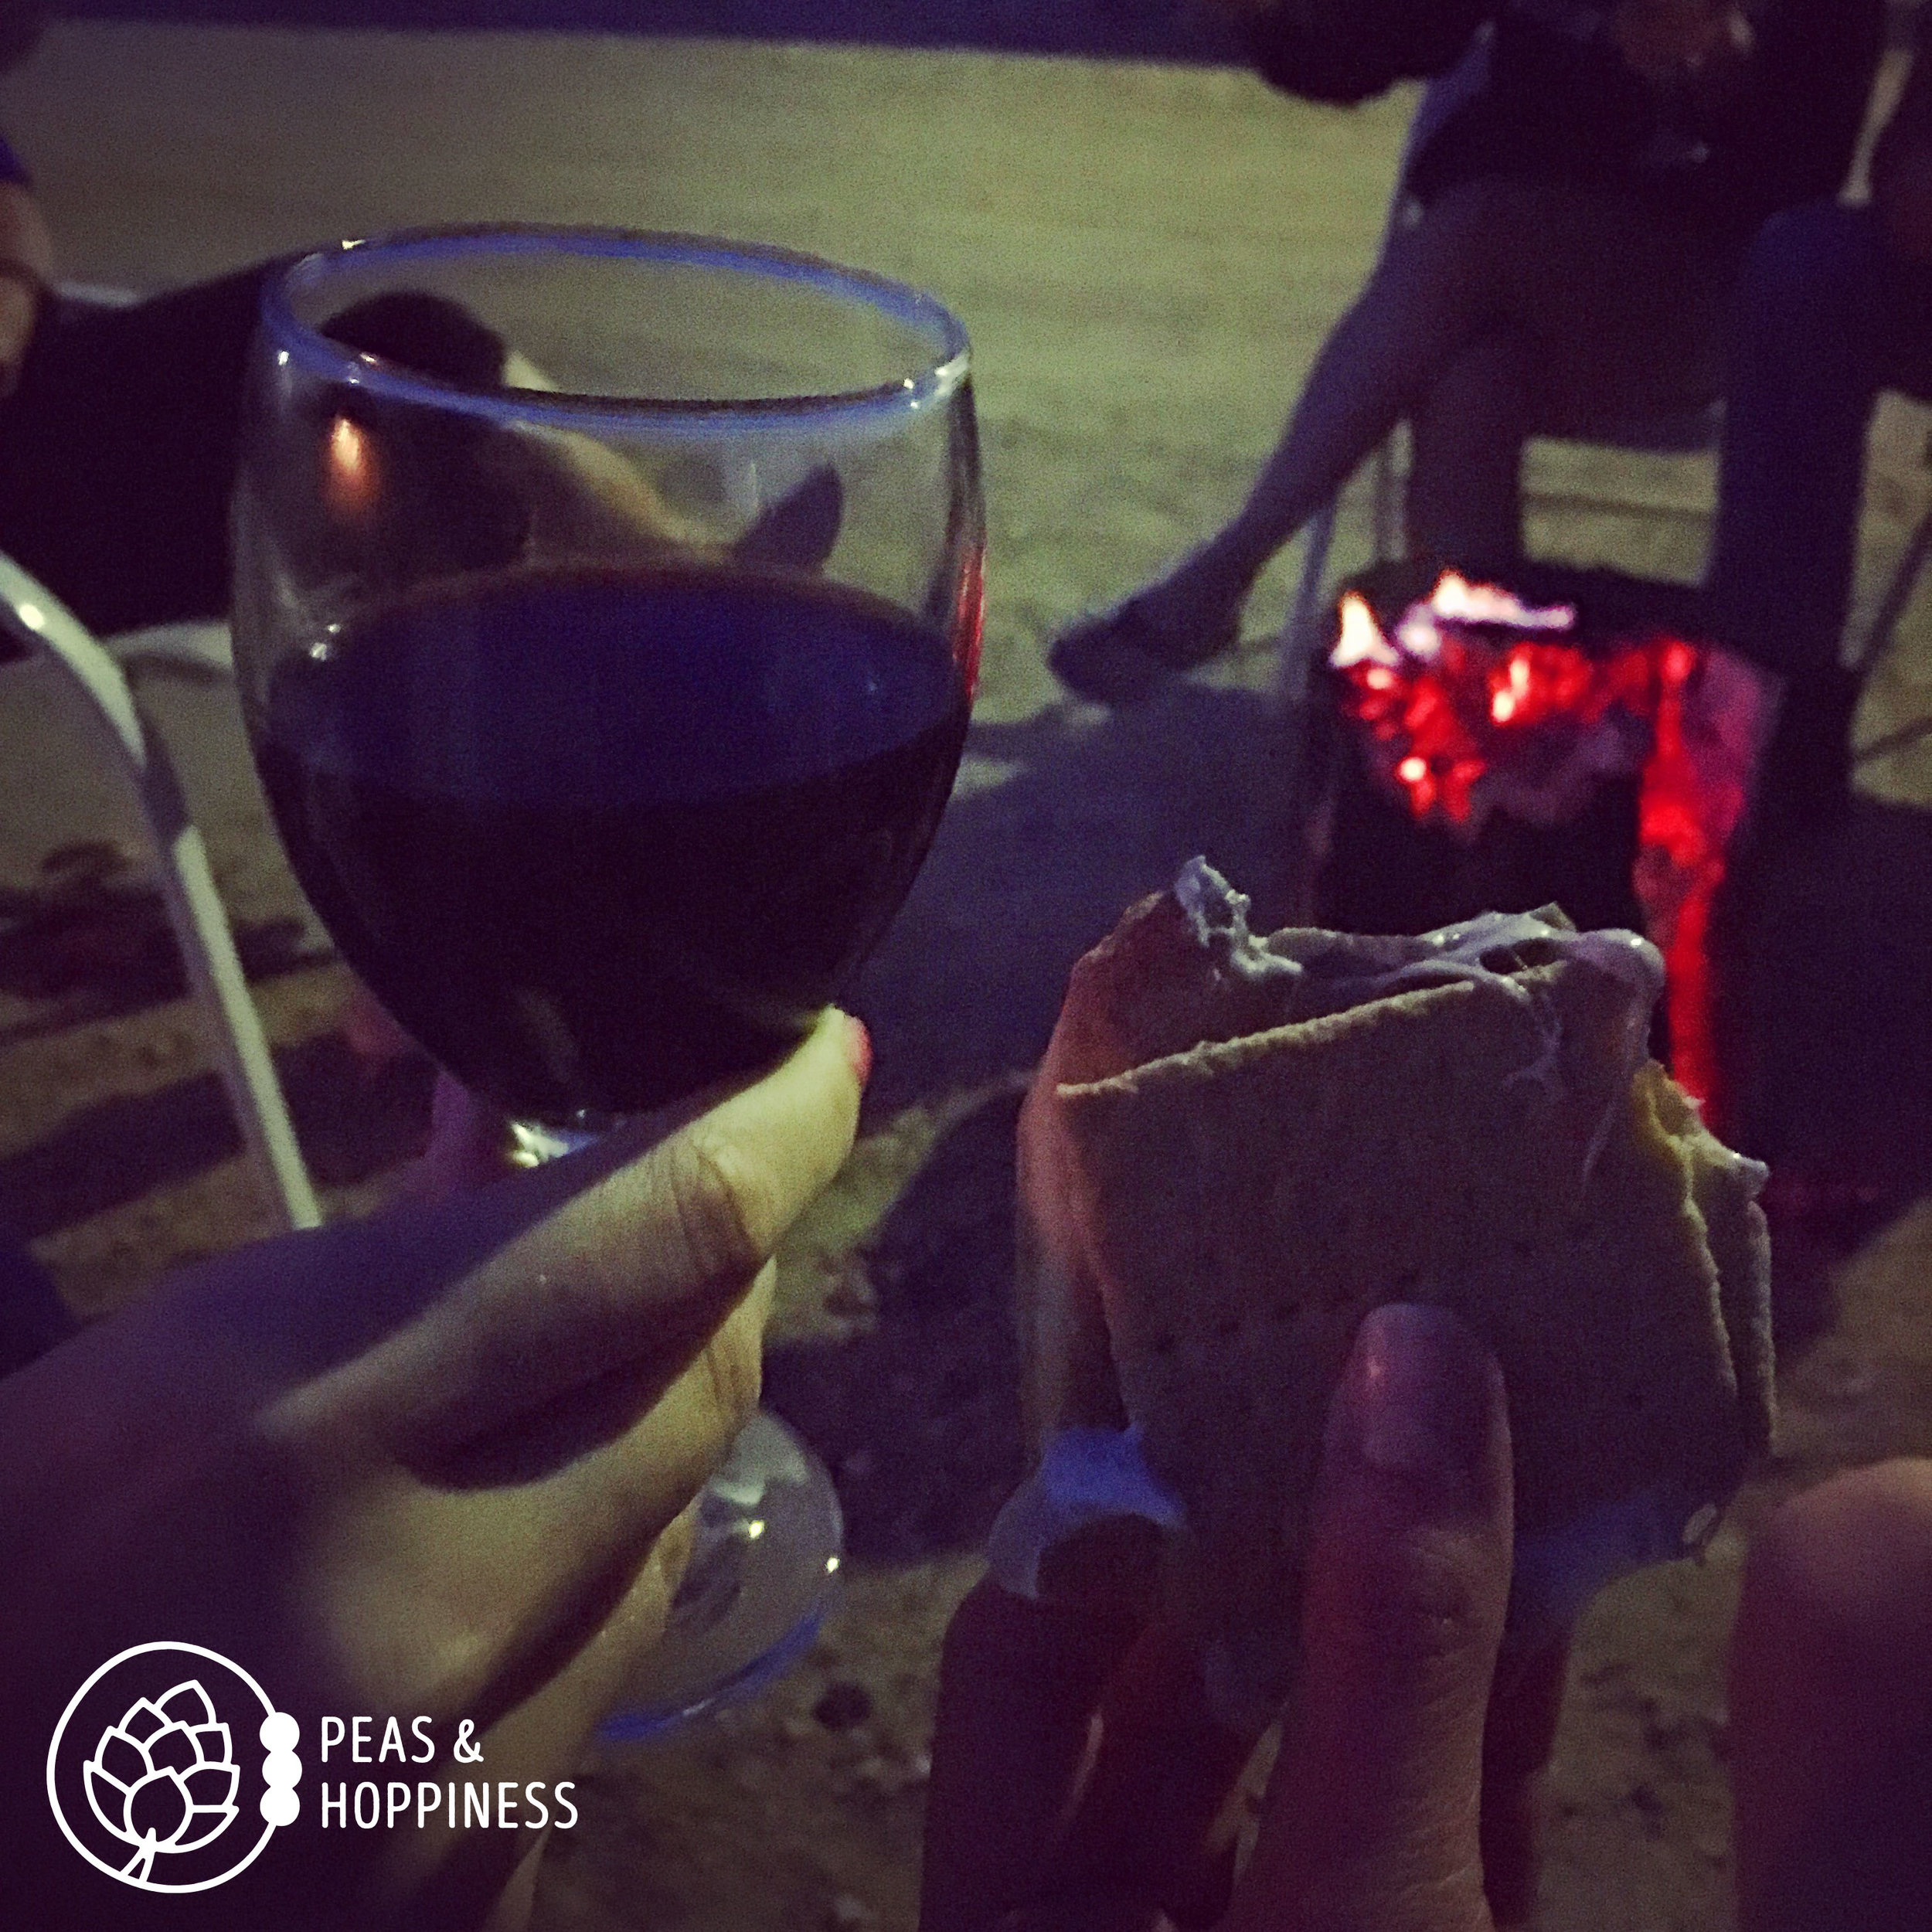 Wine + S'mores + Campfire + Friends. Sweet, sweet summertime